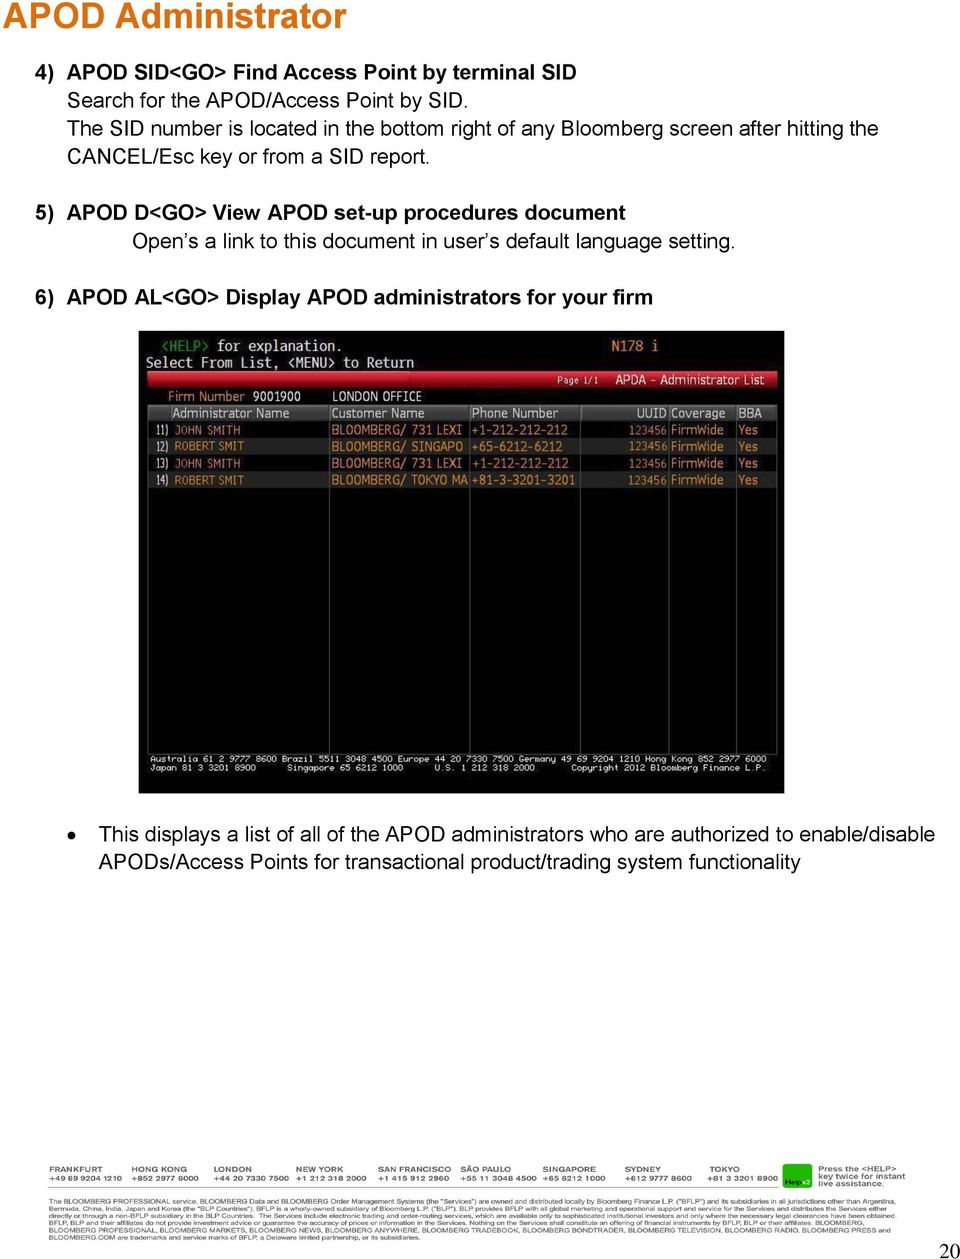 5) APOD D<GO> View APOD set-up procedures document Open s a link to this document in user s default language setting.